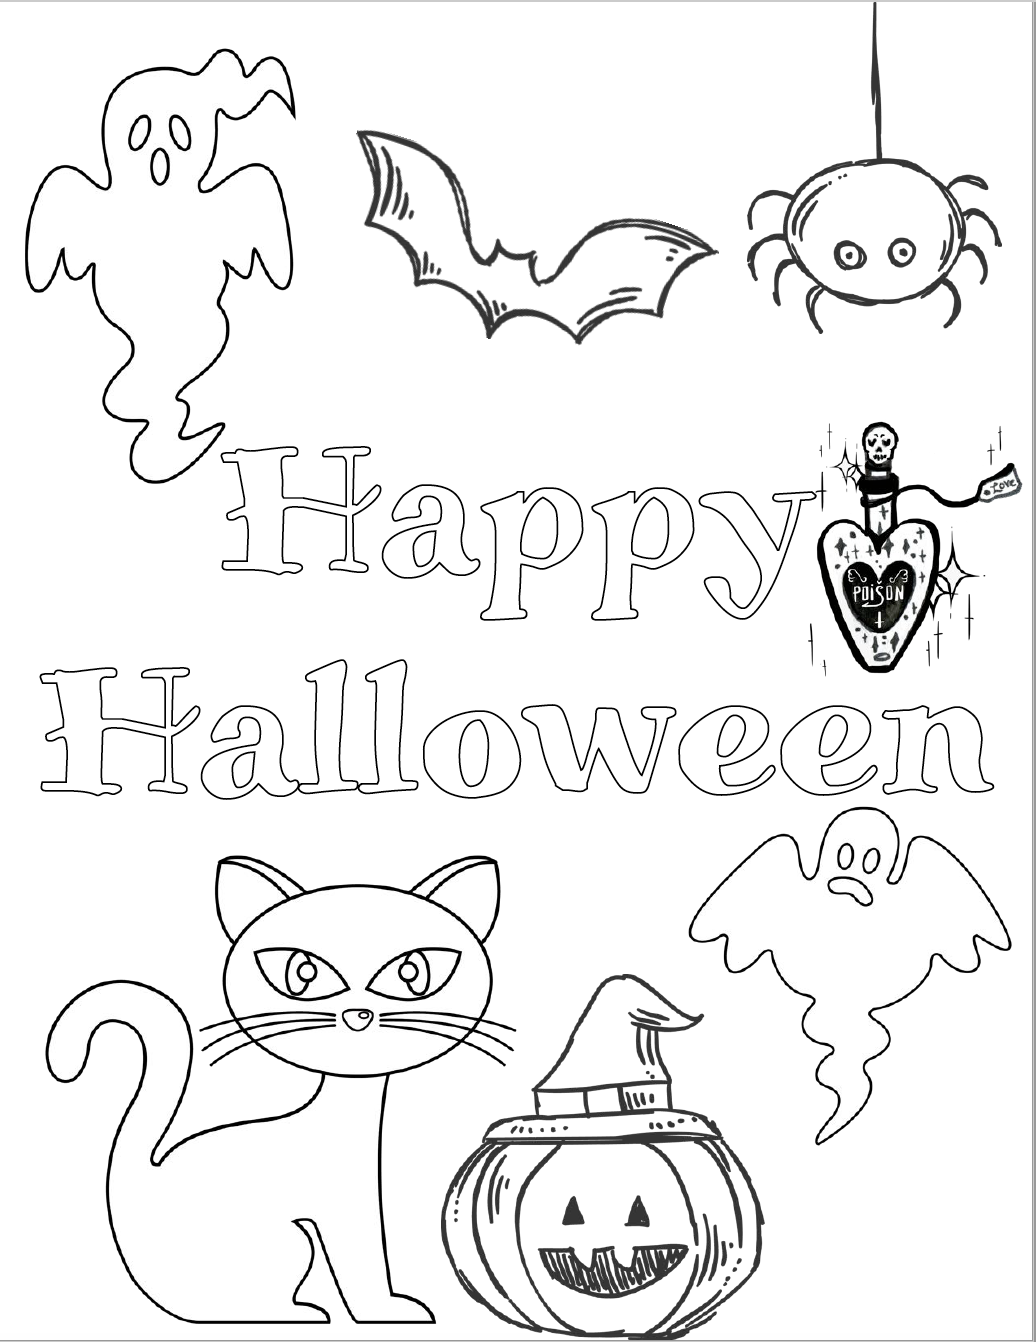 Halloween cat, pumpkin, ghosts, bat, and more. Free printable halloween coloring pages for kids. 5 designs to choose from! Spooky houses, ghosts, pumpkins, and fall-theme from easy to a little more difficult. #free #printable #freeprintable #halloween #coloring #halloweencoloring #freecoloring